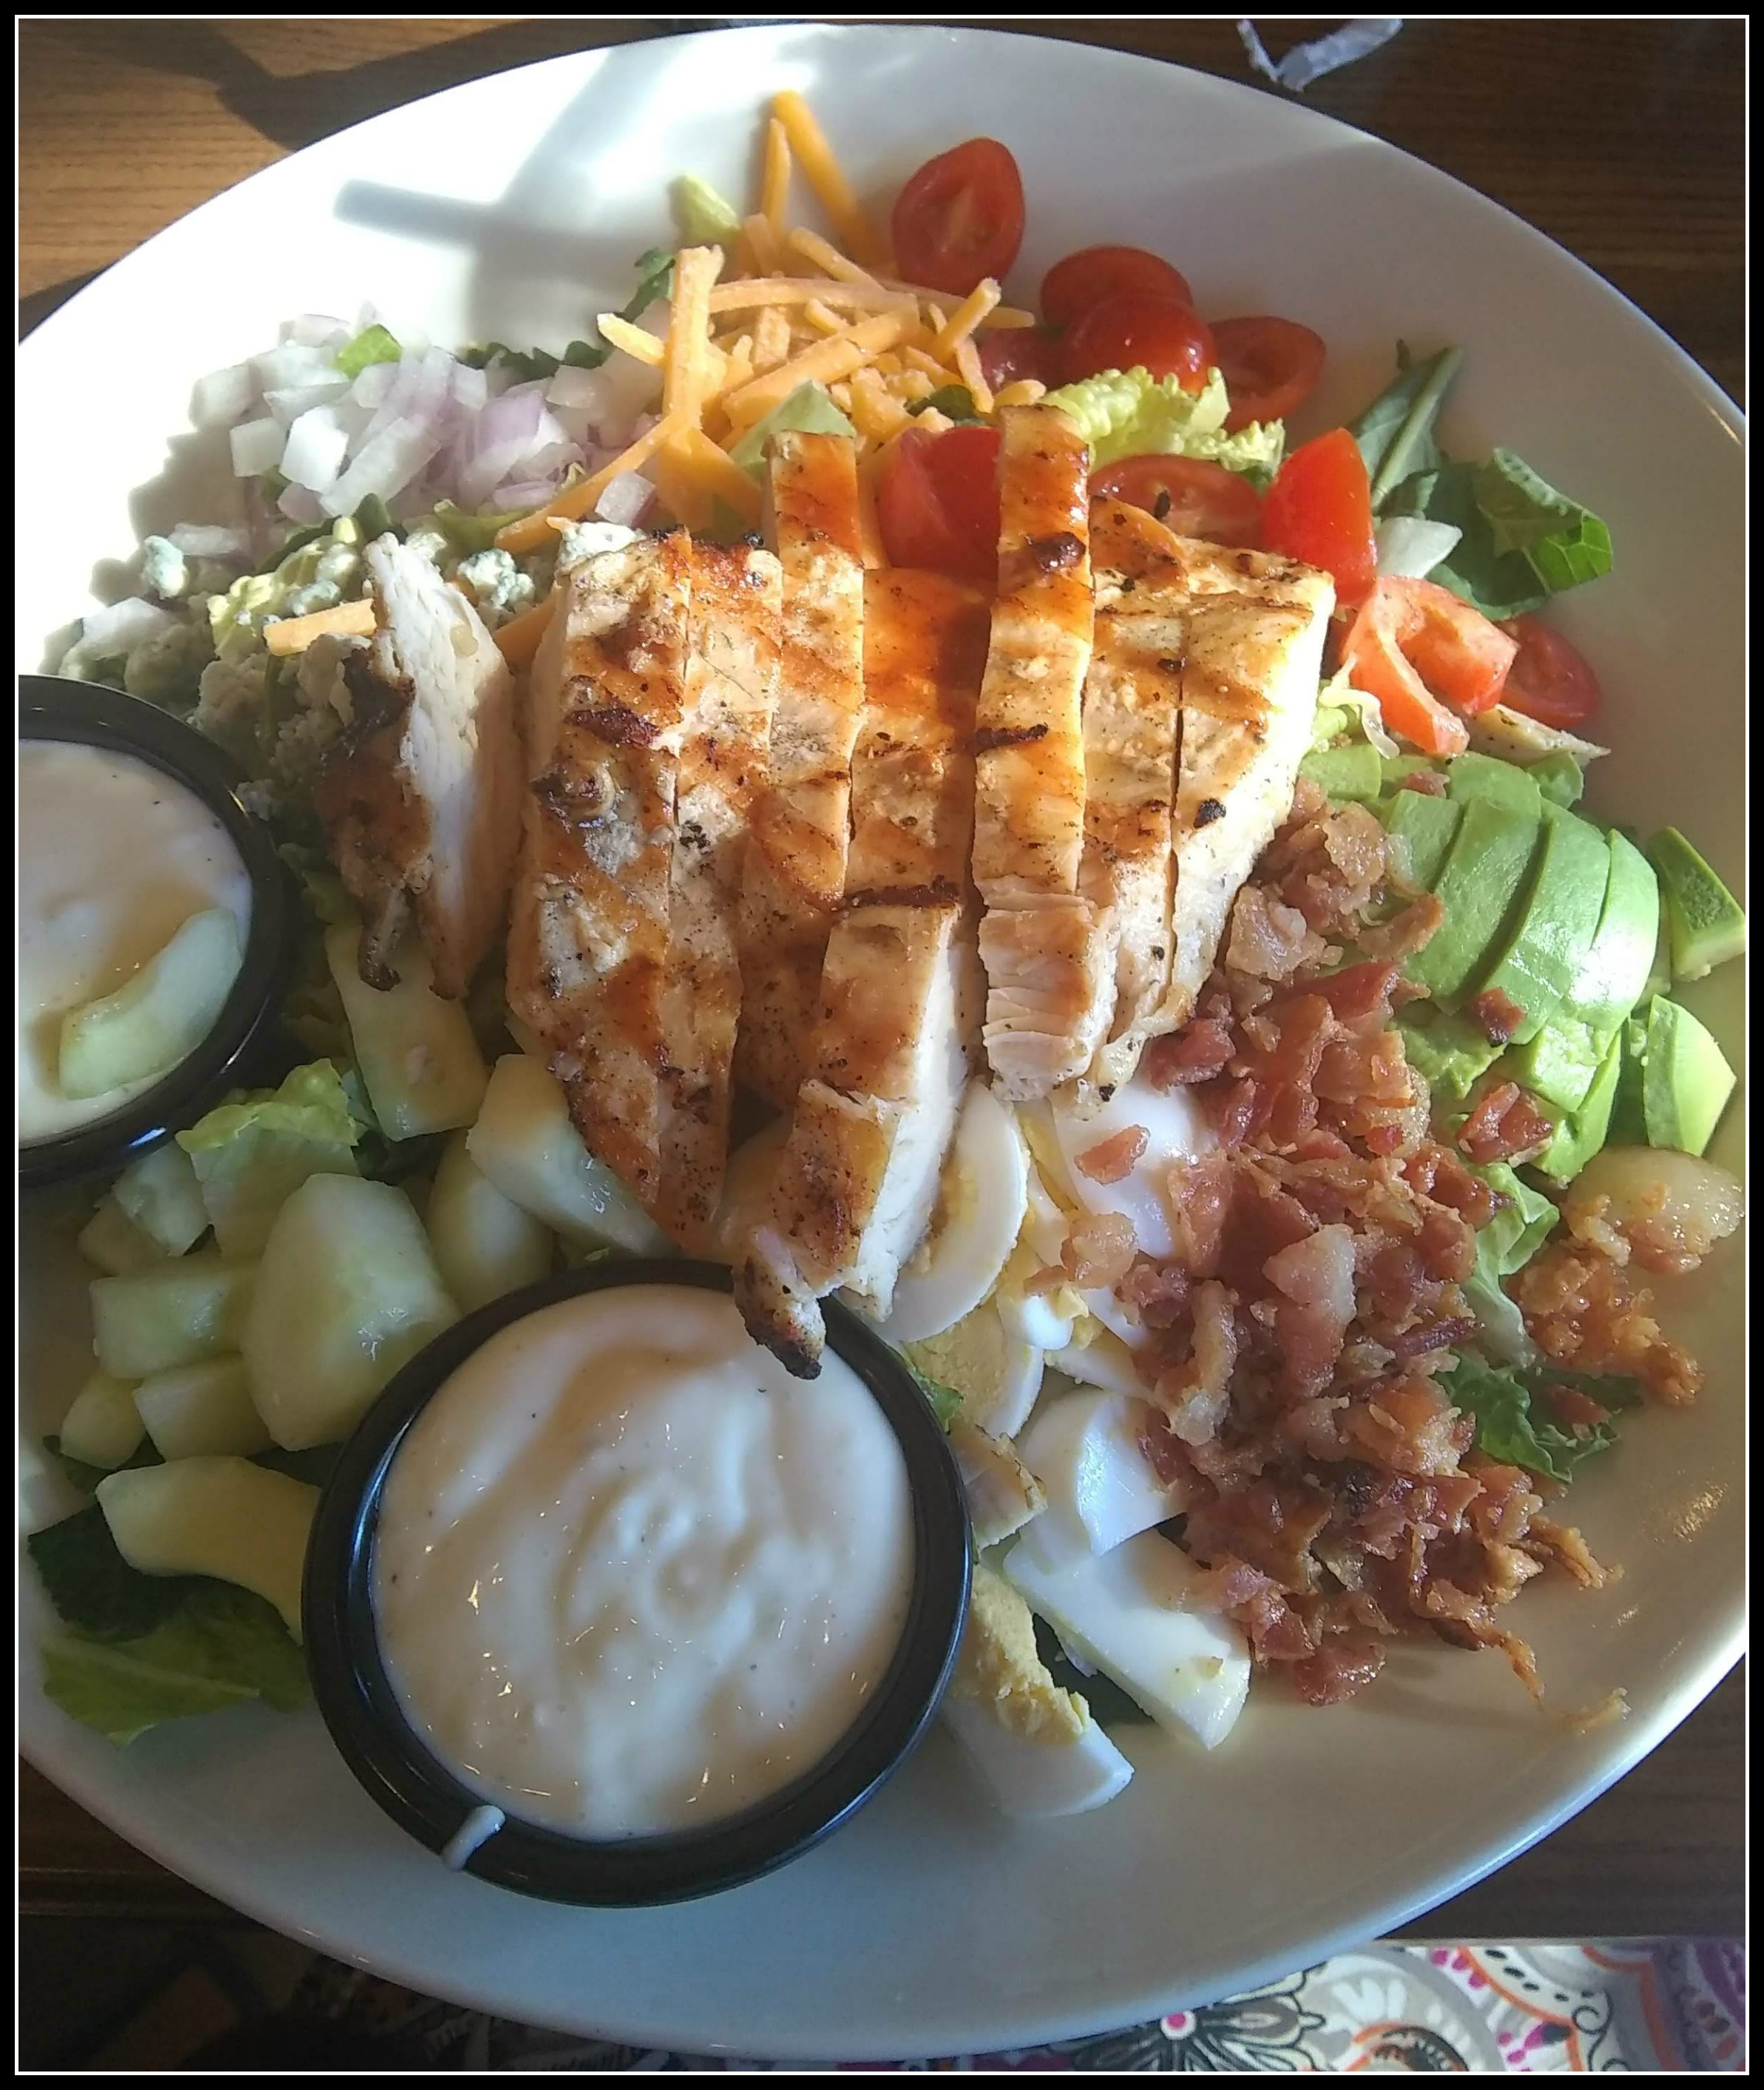 Cobb salad from TGIF